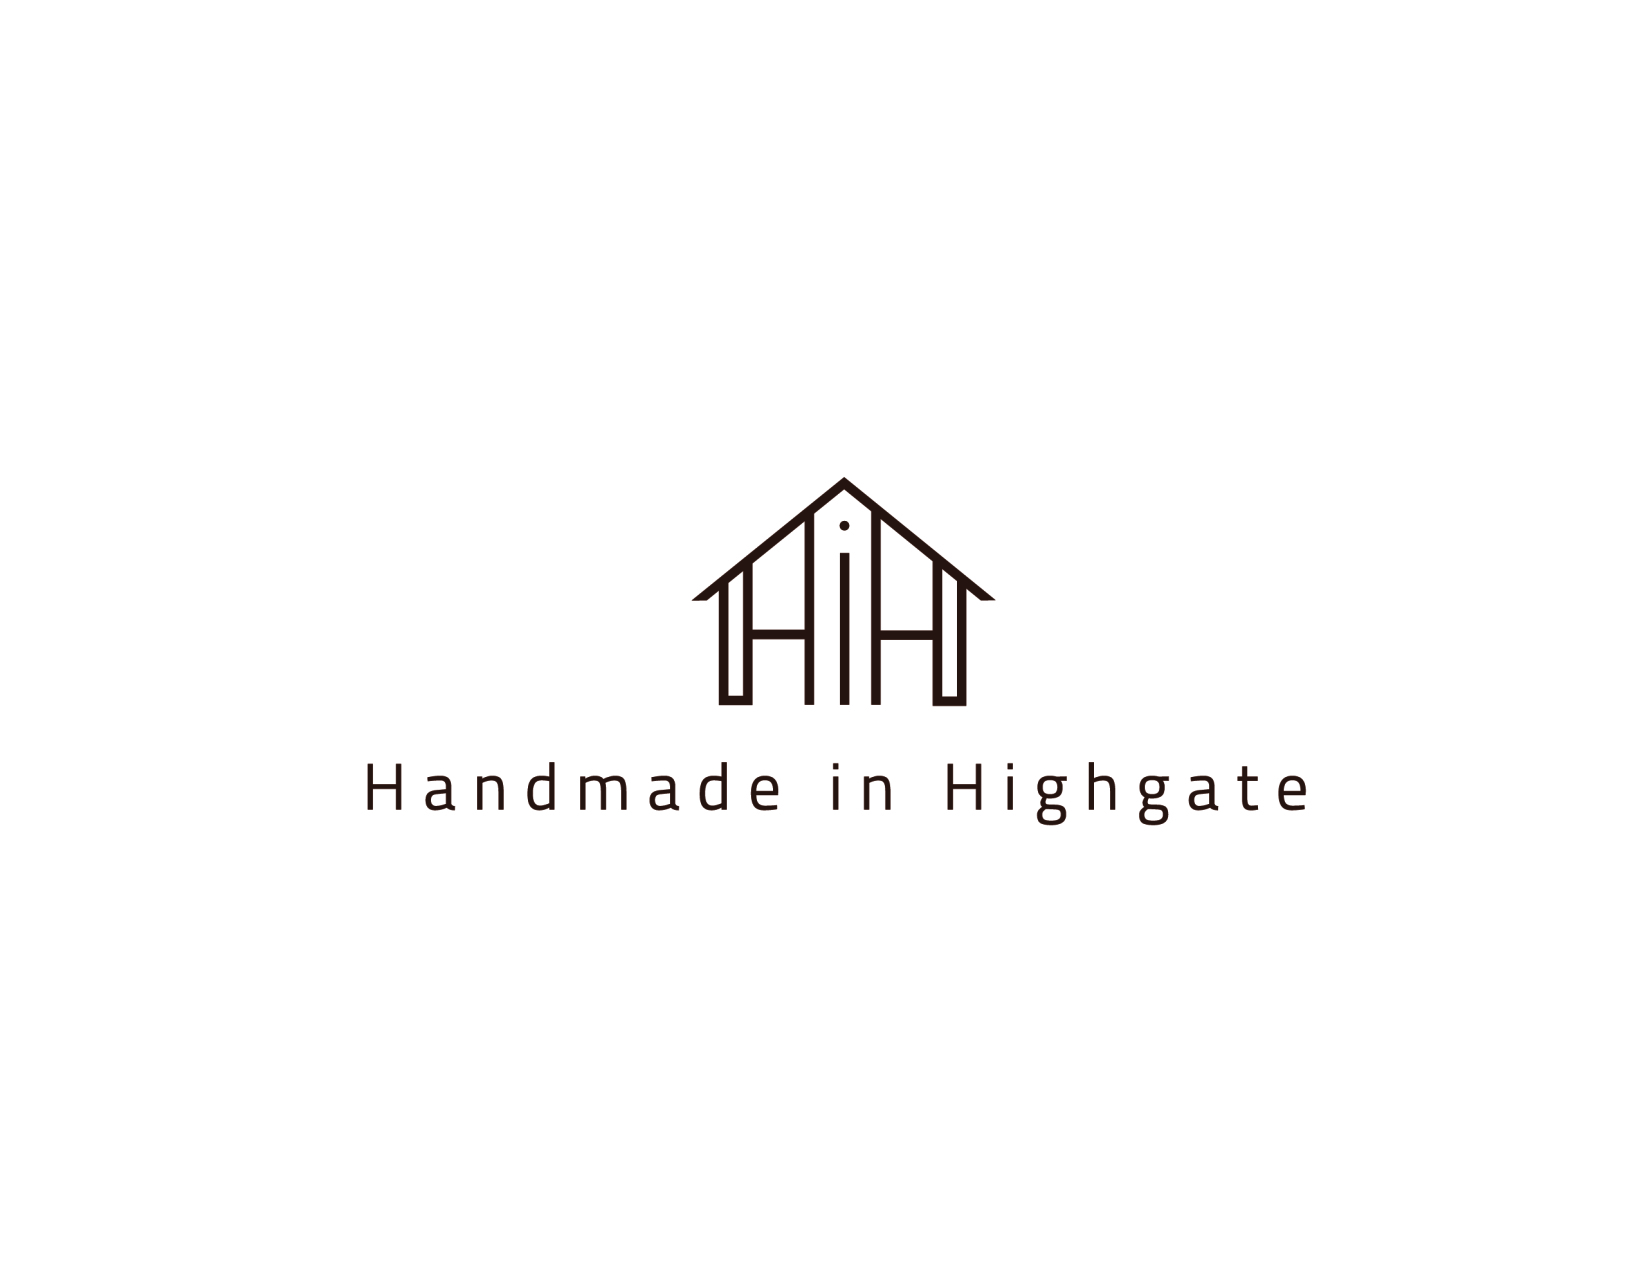 handmade-in-highgate.jpg